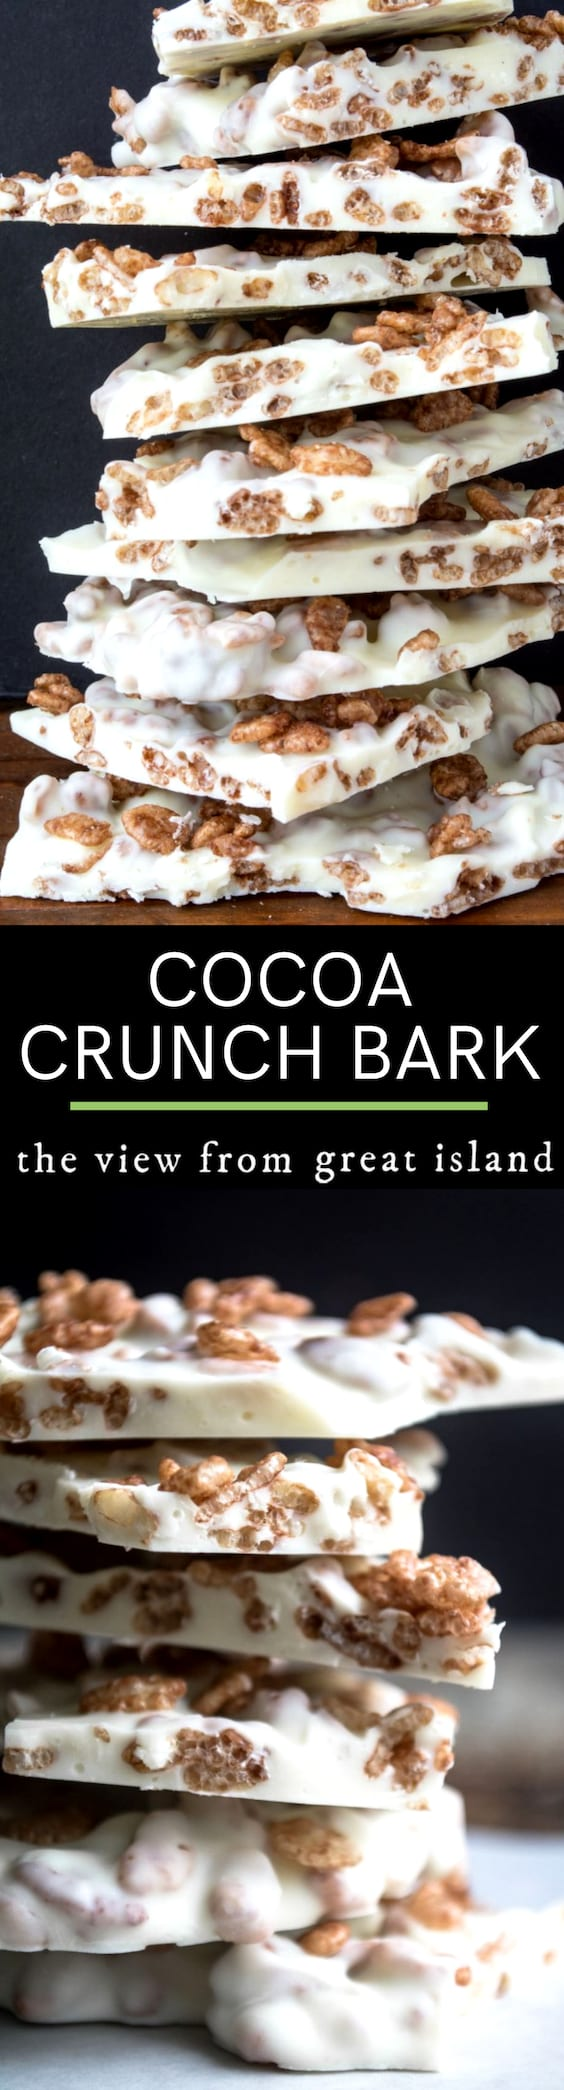 My 2-Ingredient Cocoa Crunch Bark is like a homemade version of a Nestle's Crunch bar, only turned on its head with a creamy white chocolate base and Cocoa Krispies for the crunch. #candy #bark #whitechocolate #candybar #homemade #easy #recipe #chocolate #microwave #crispy #dessert #cereal